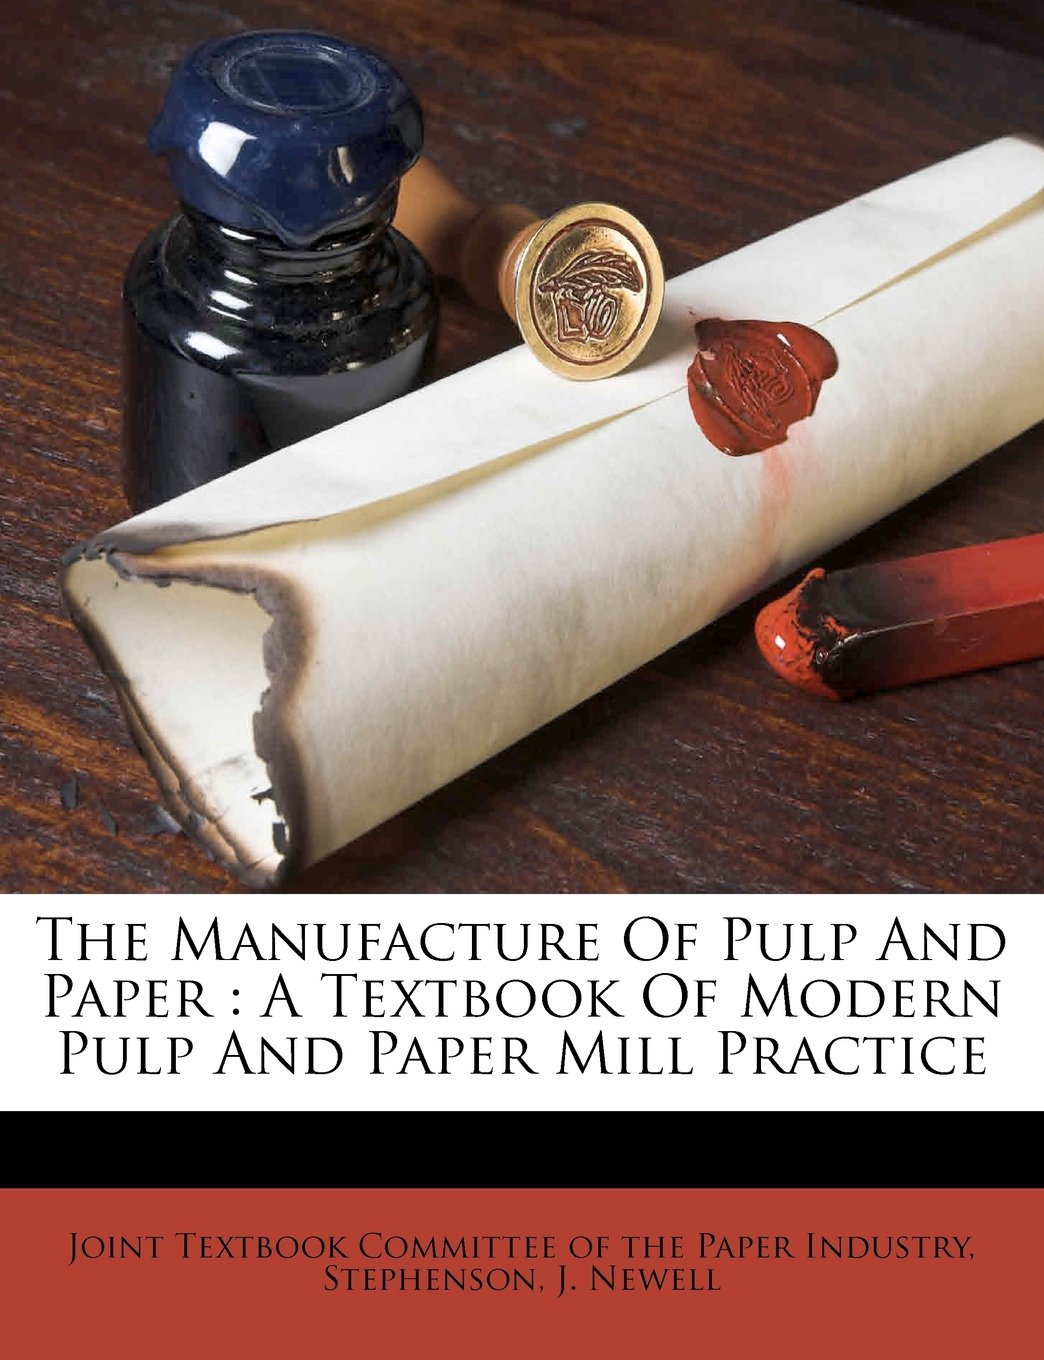 Download The manufacture of pulp and paper: a textbook of modern pulp and paper mill practice pdf